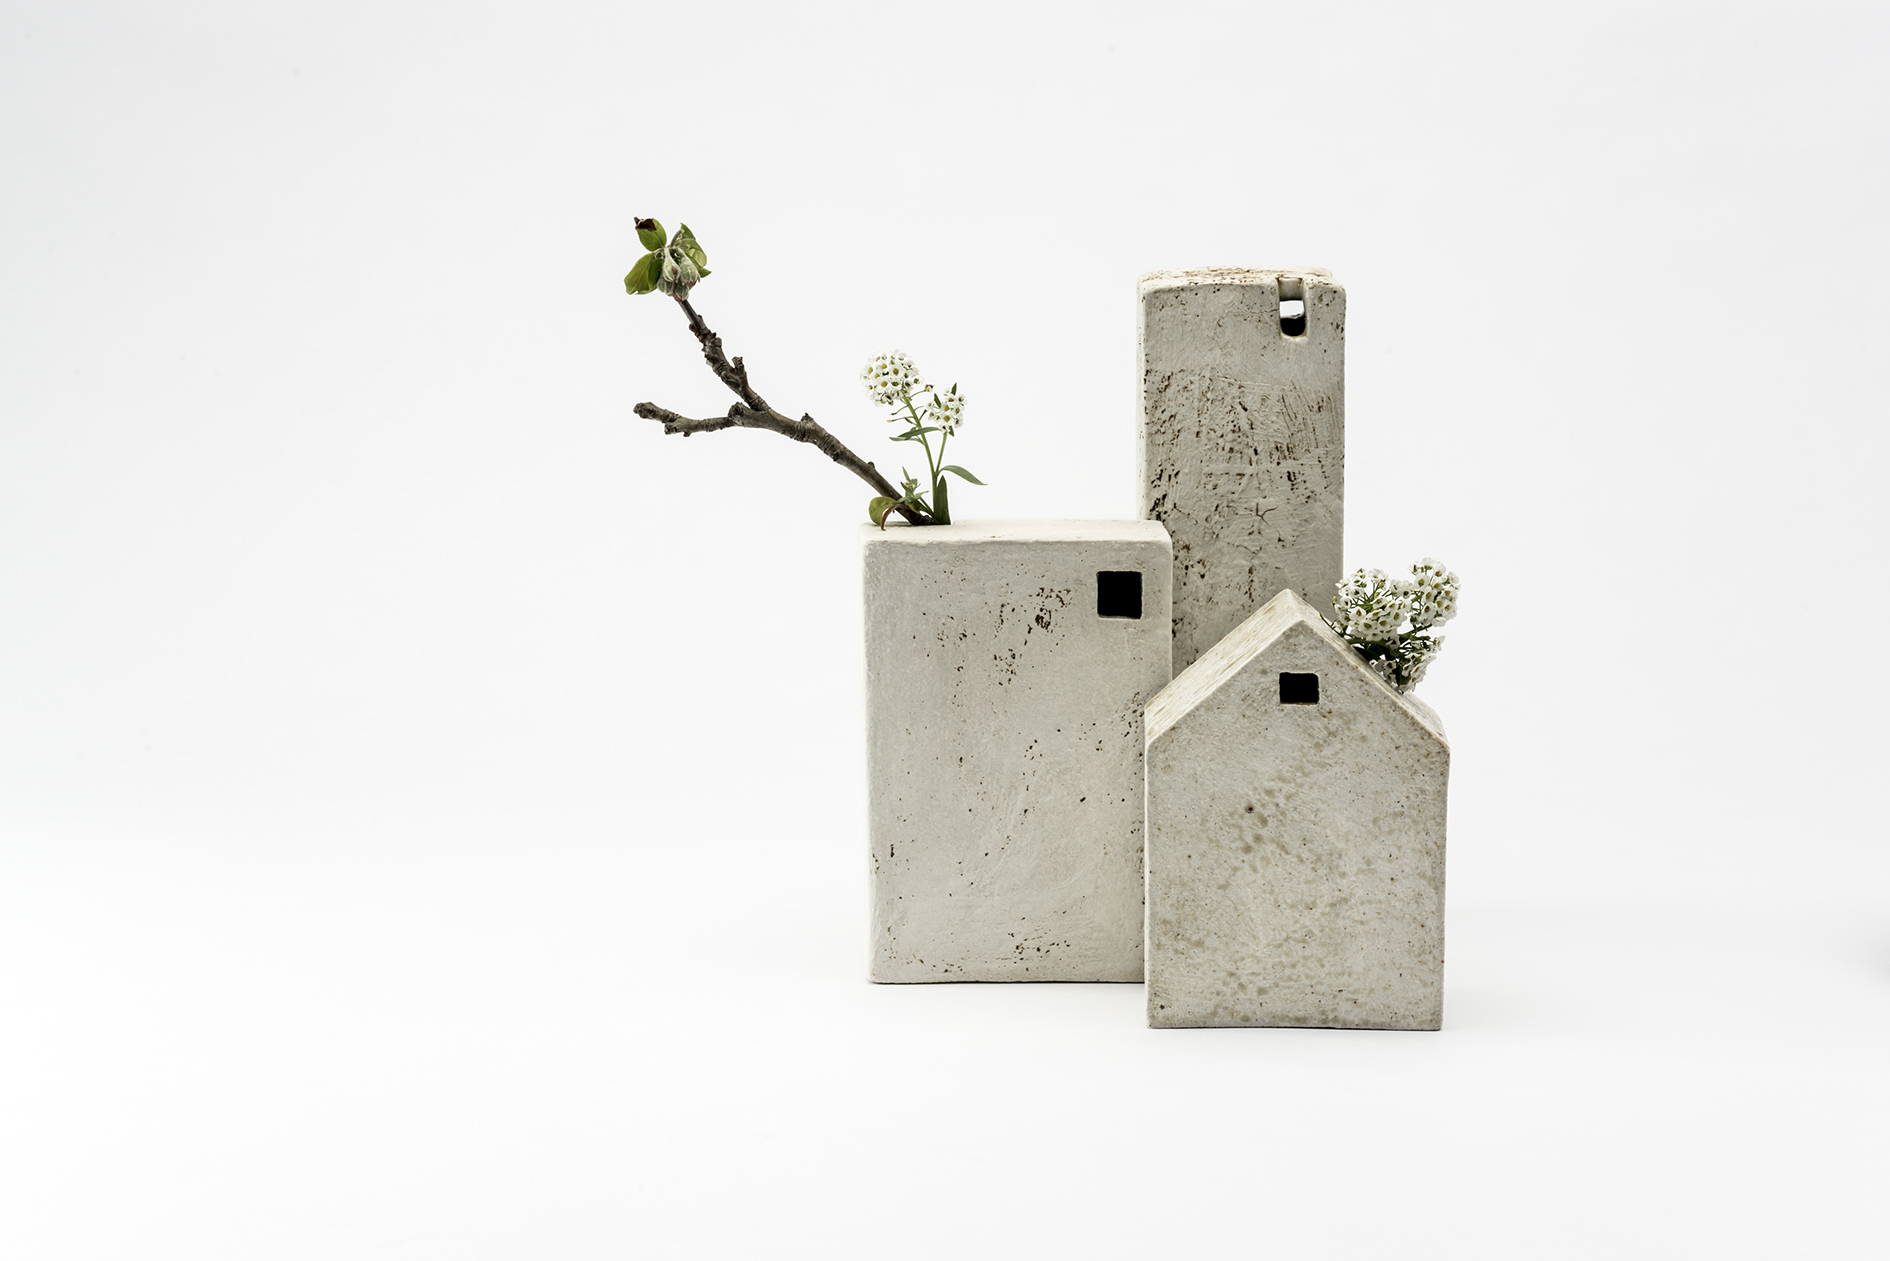 'House Vase' objects with blossom. Window-like incisions add practicality. Photo Greg Piper